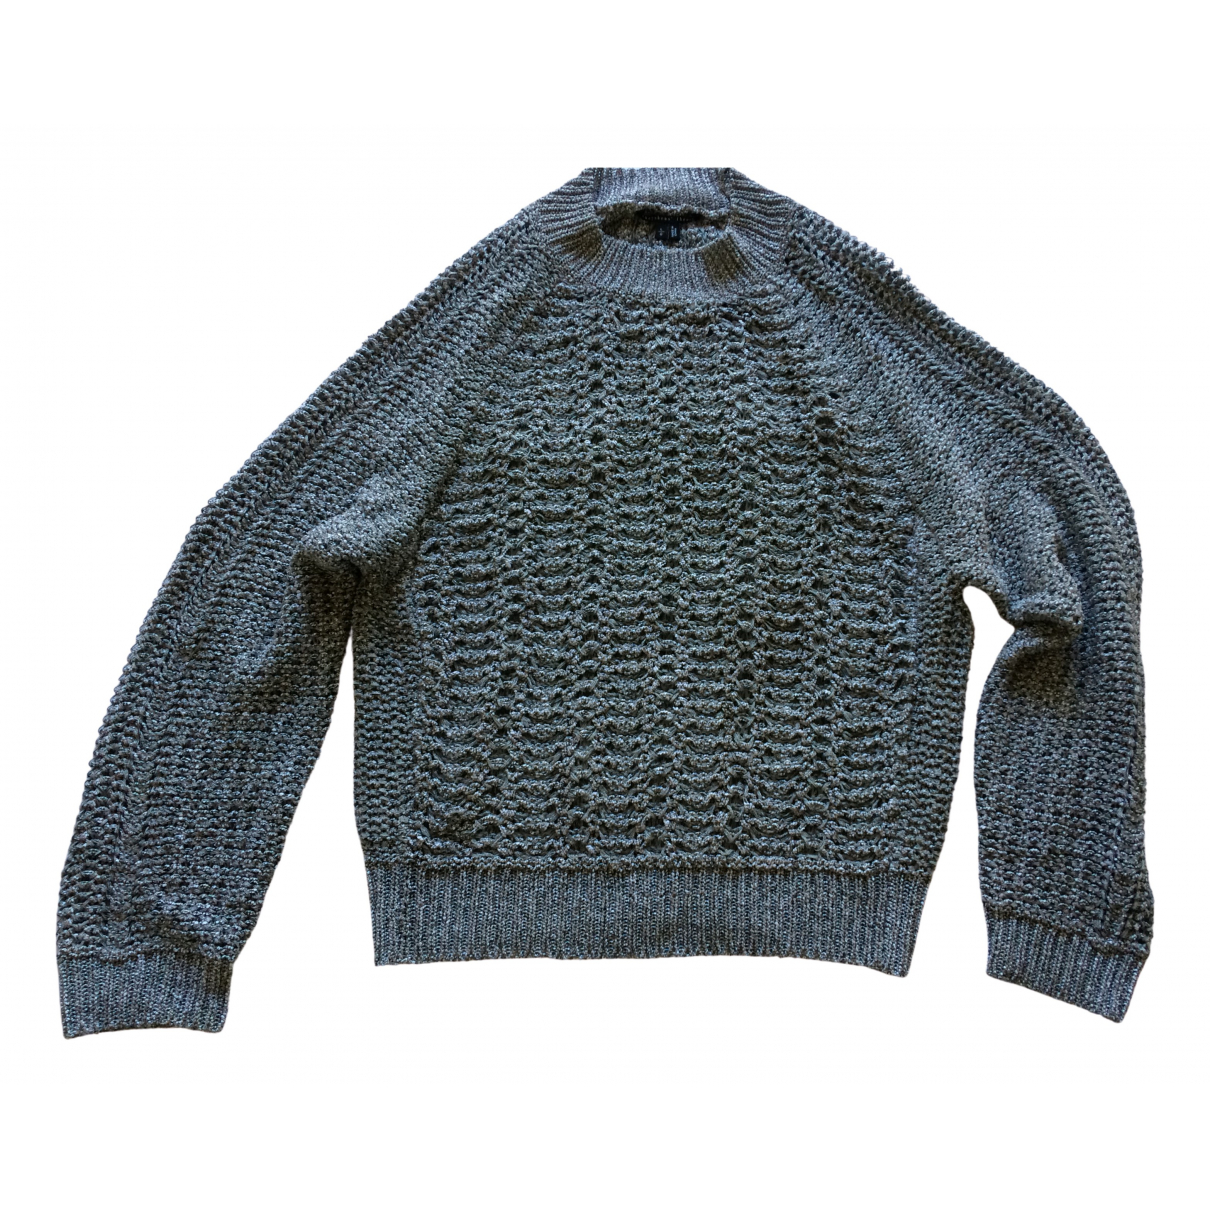 Theyskens Theory - Pull   pour femme - gris